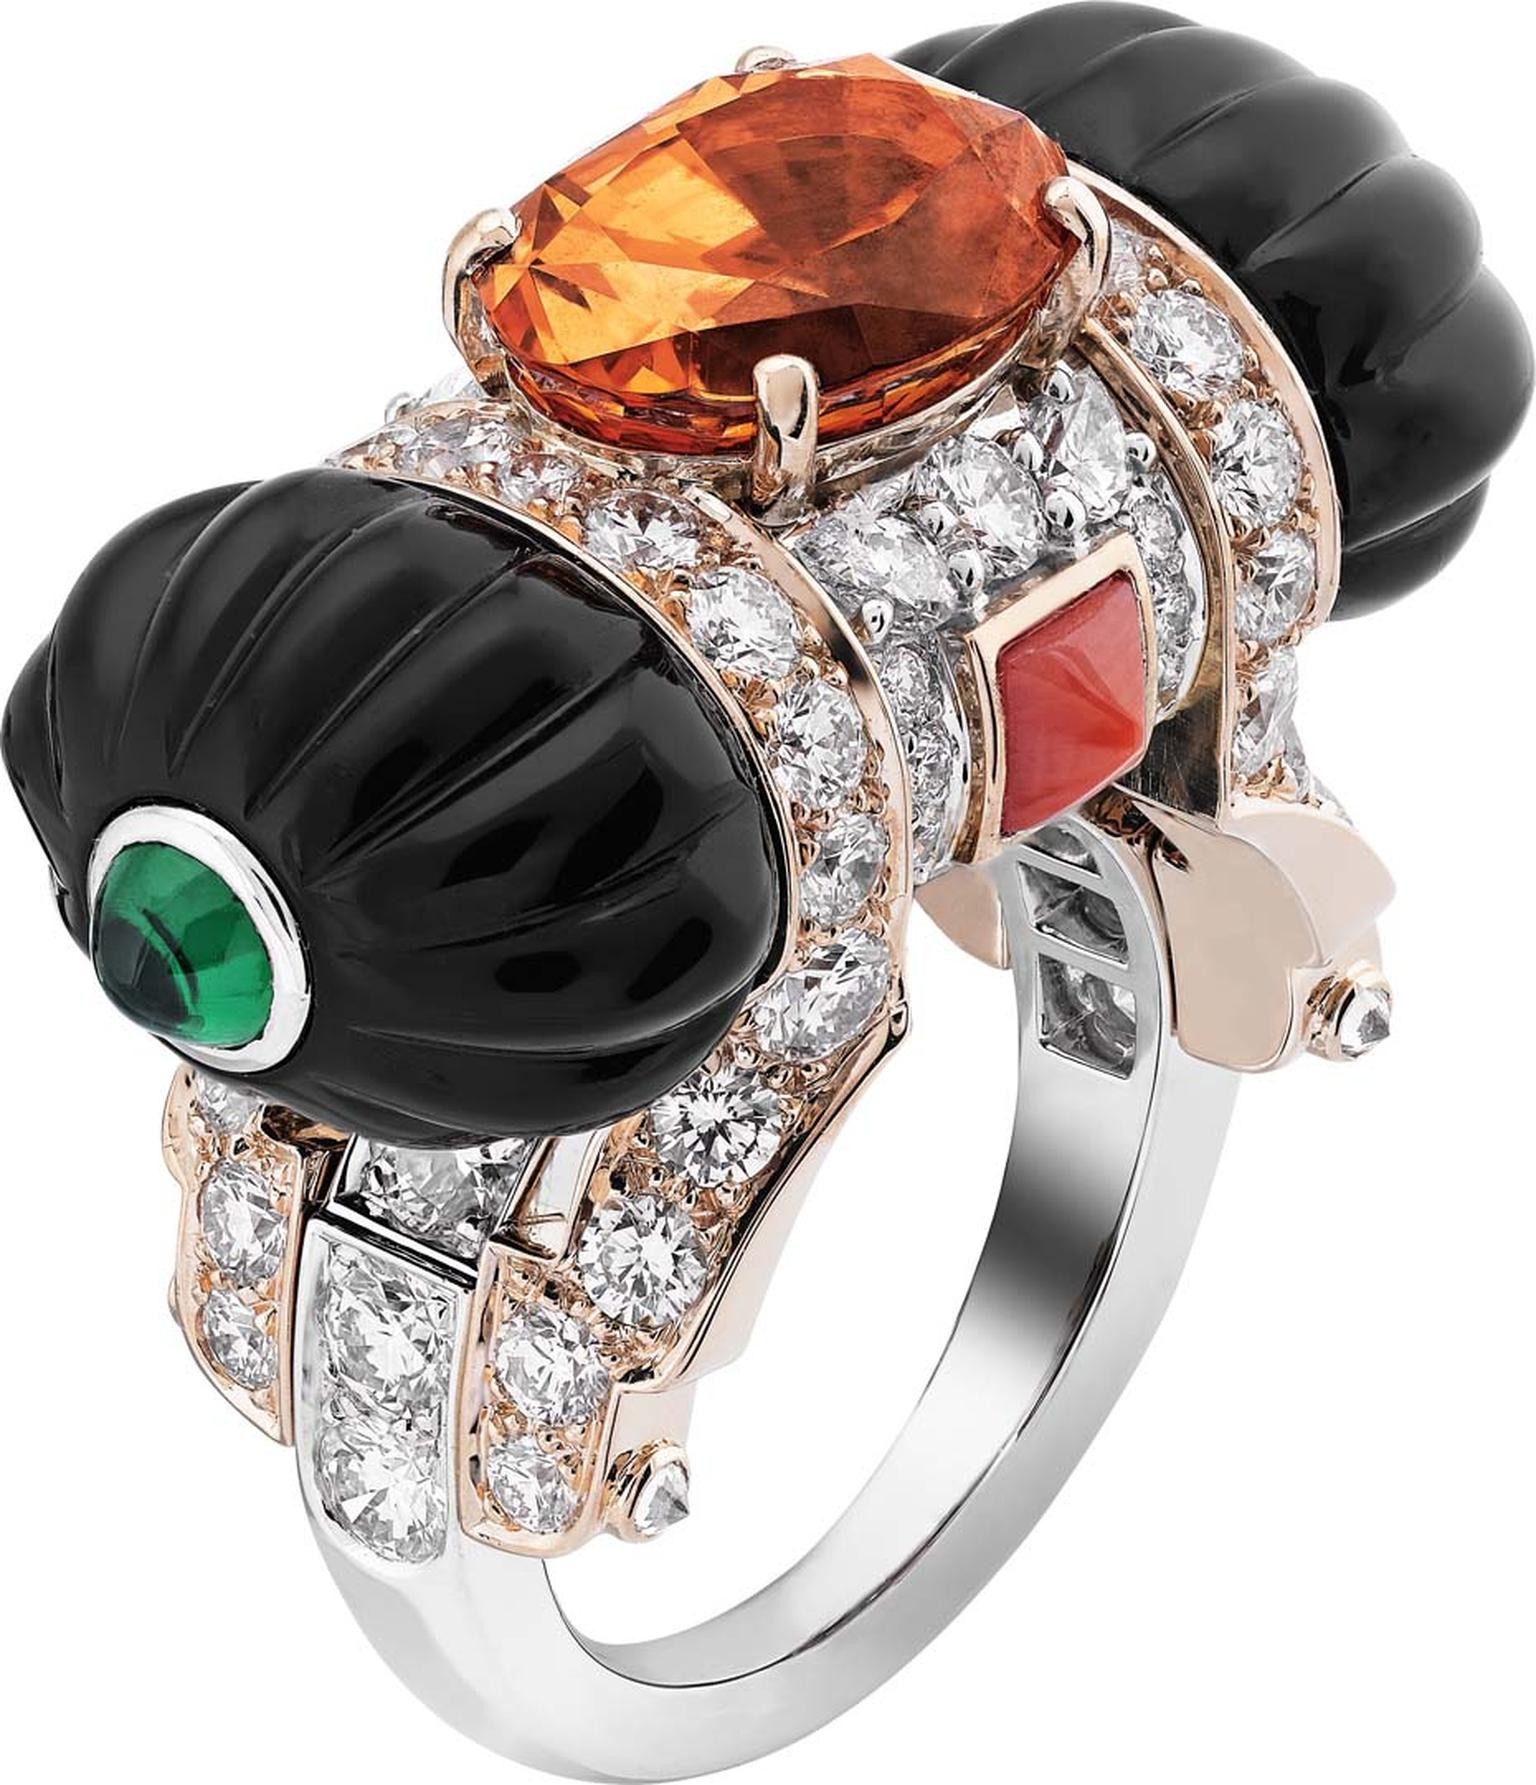 Van Cleef & Arpels Peau d'Ane Happy Marriage collection East Gift ring in white and pink gold with a 5.67ct oval spessartite garnet, round and pear-cut diamonds, onyx, coral and two cabochon emeralds.